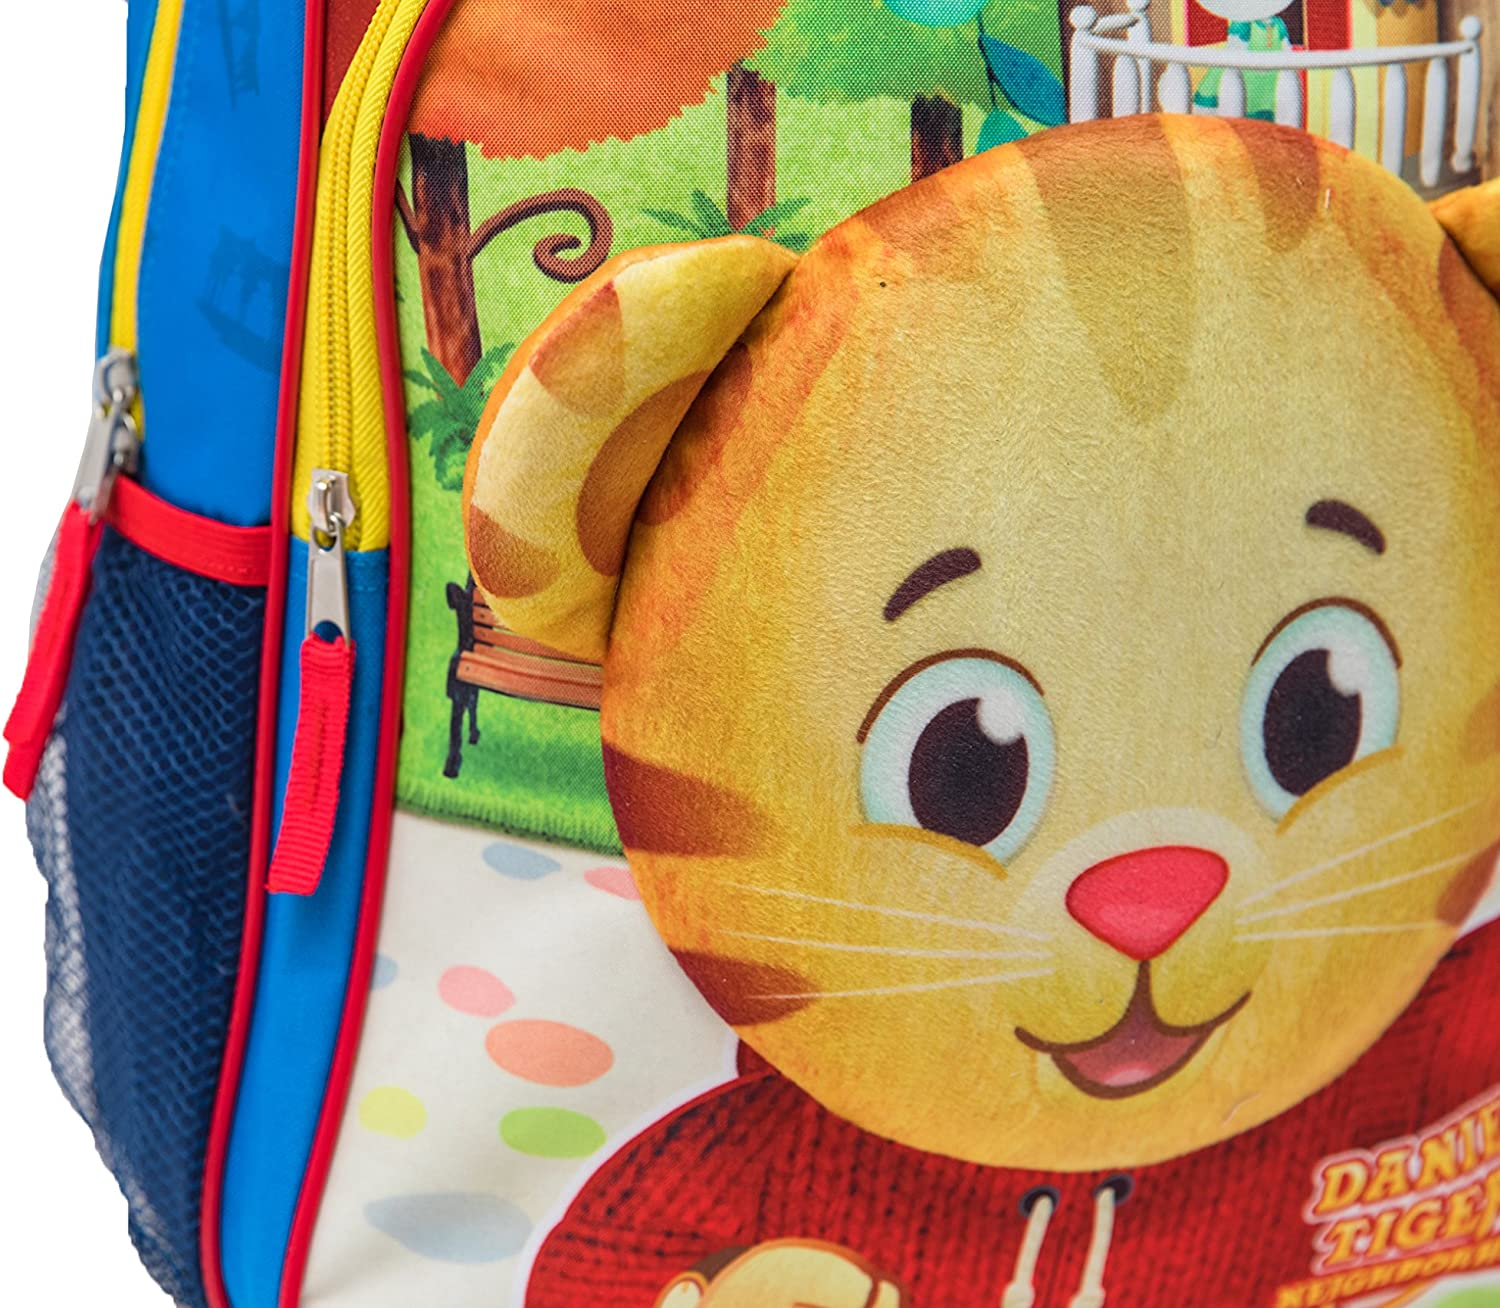 The Fred Rogers Company Daniel Tiger Backpack with Plush Applique